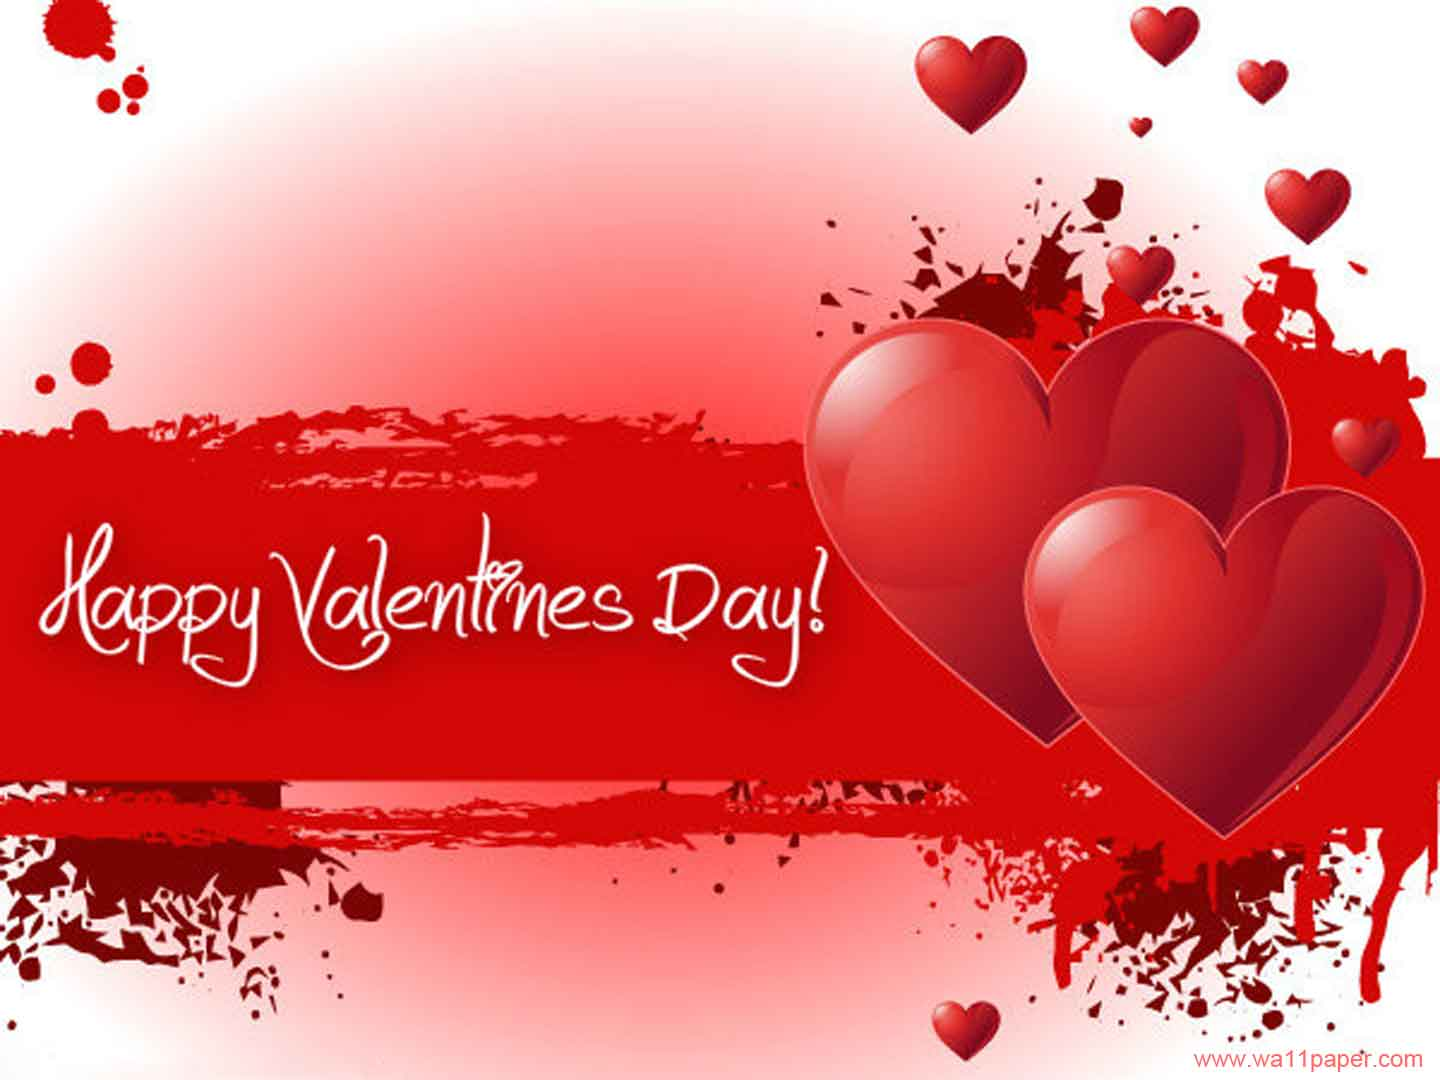 Valentine's Day Special – History, Facts, Origins & Traditions